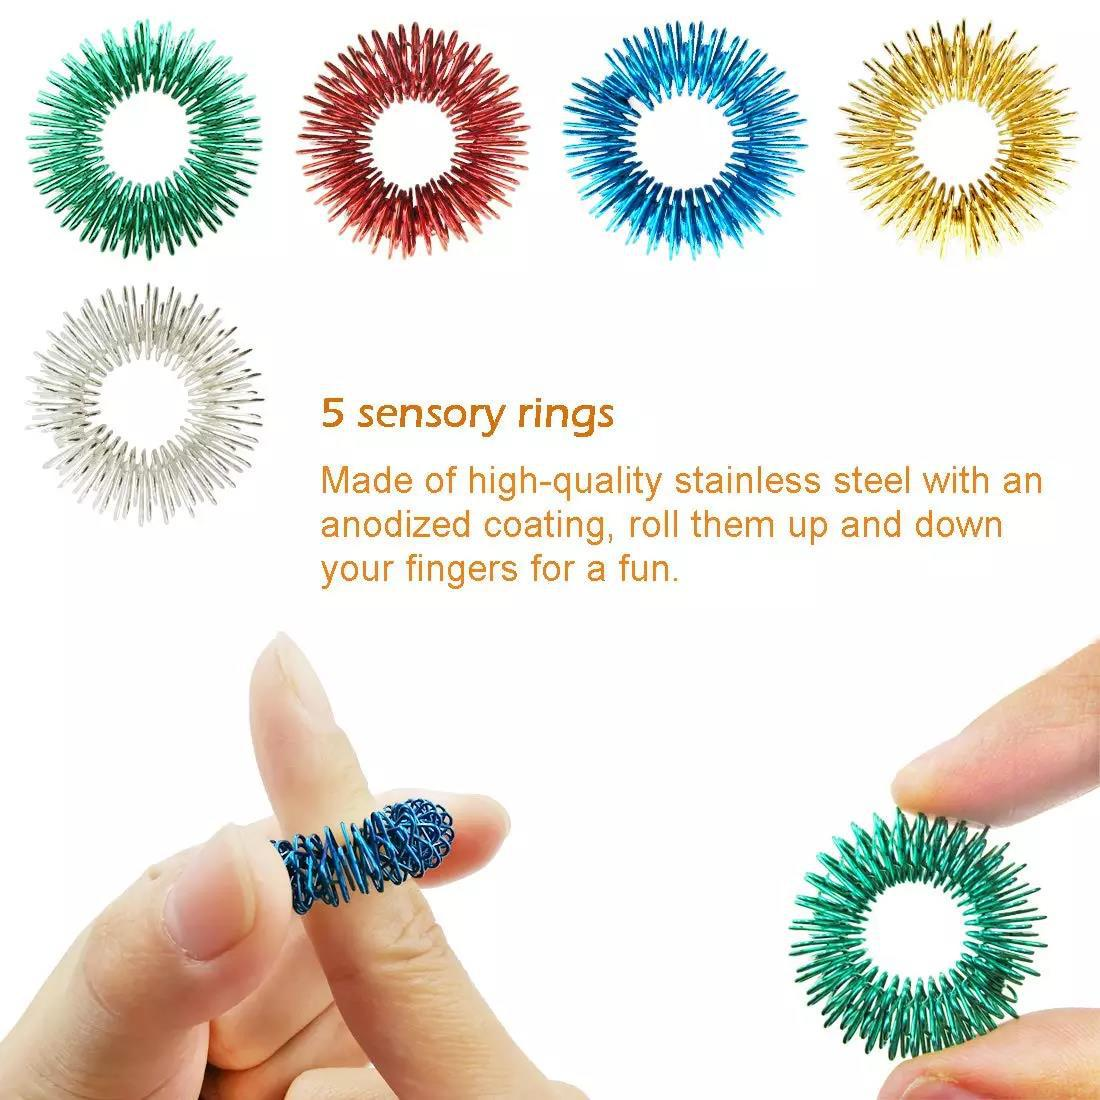 22 Pack Fidget Toys Stress Relief Toys Autism Anxiety Relief Stress Pop Bubble Fidget Sensory Decompression Toy for Kids Adults enlarge